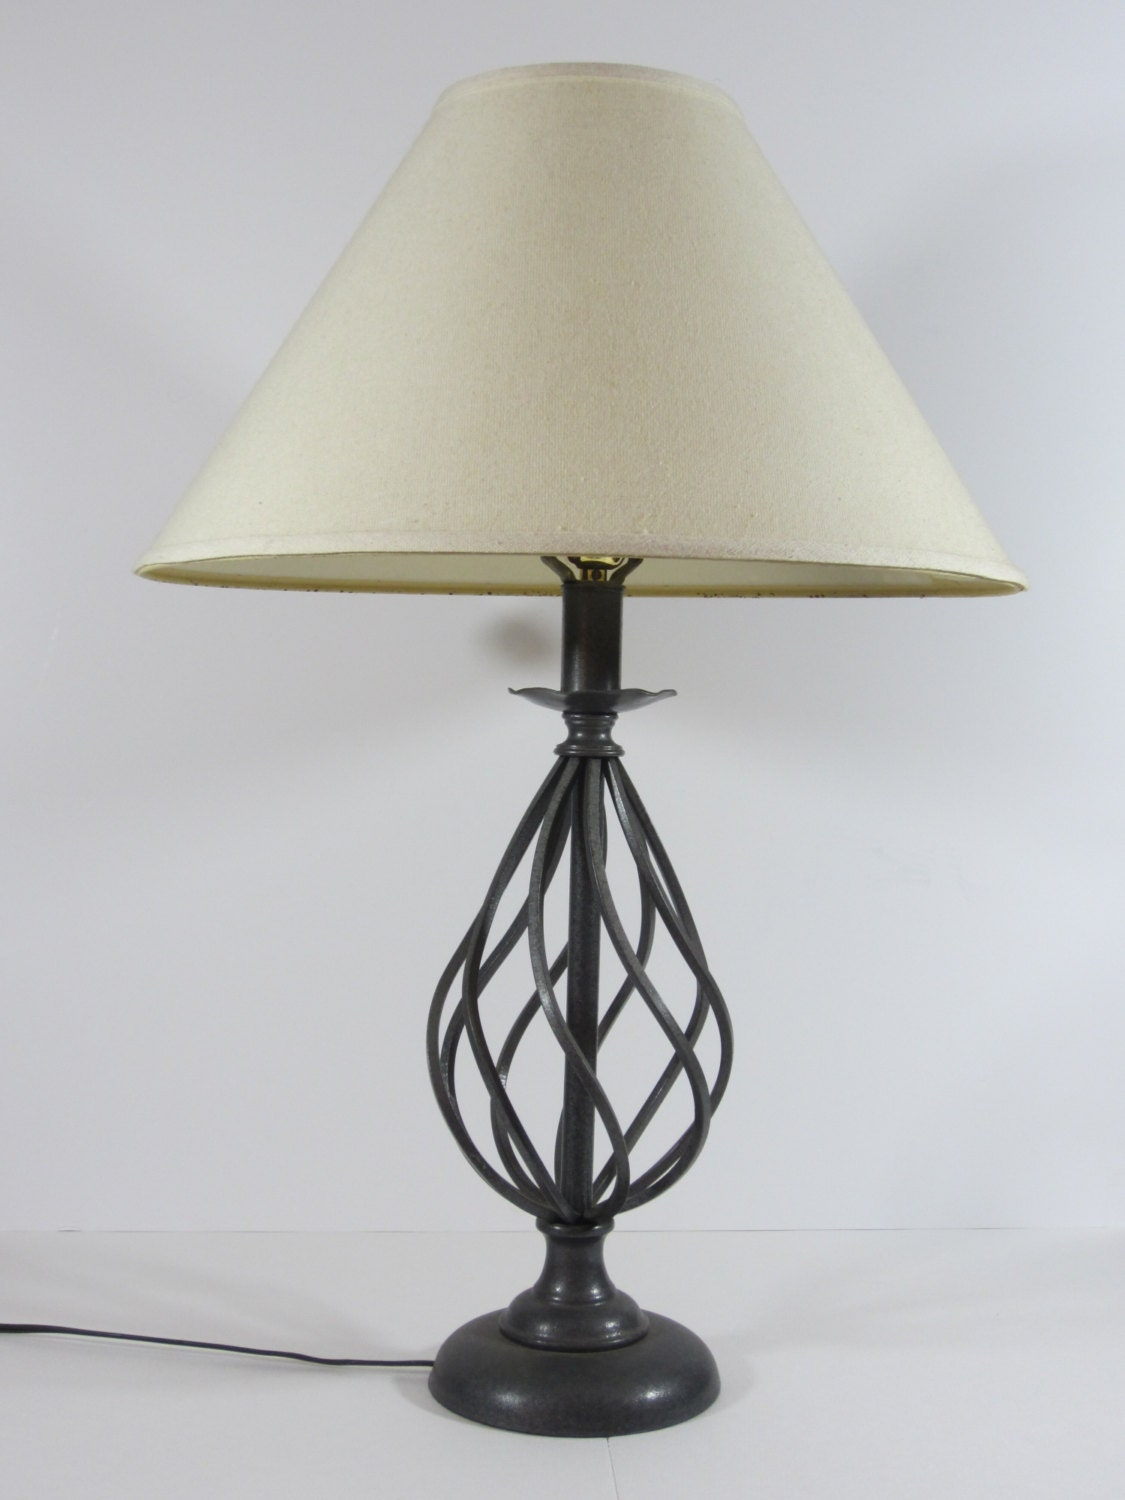 vintage wrought iron table lamp shade not included but. Black Bedroom Furniture Sets. Home Design Ideas